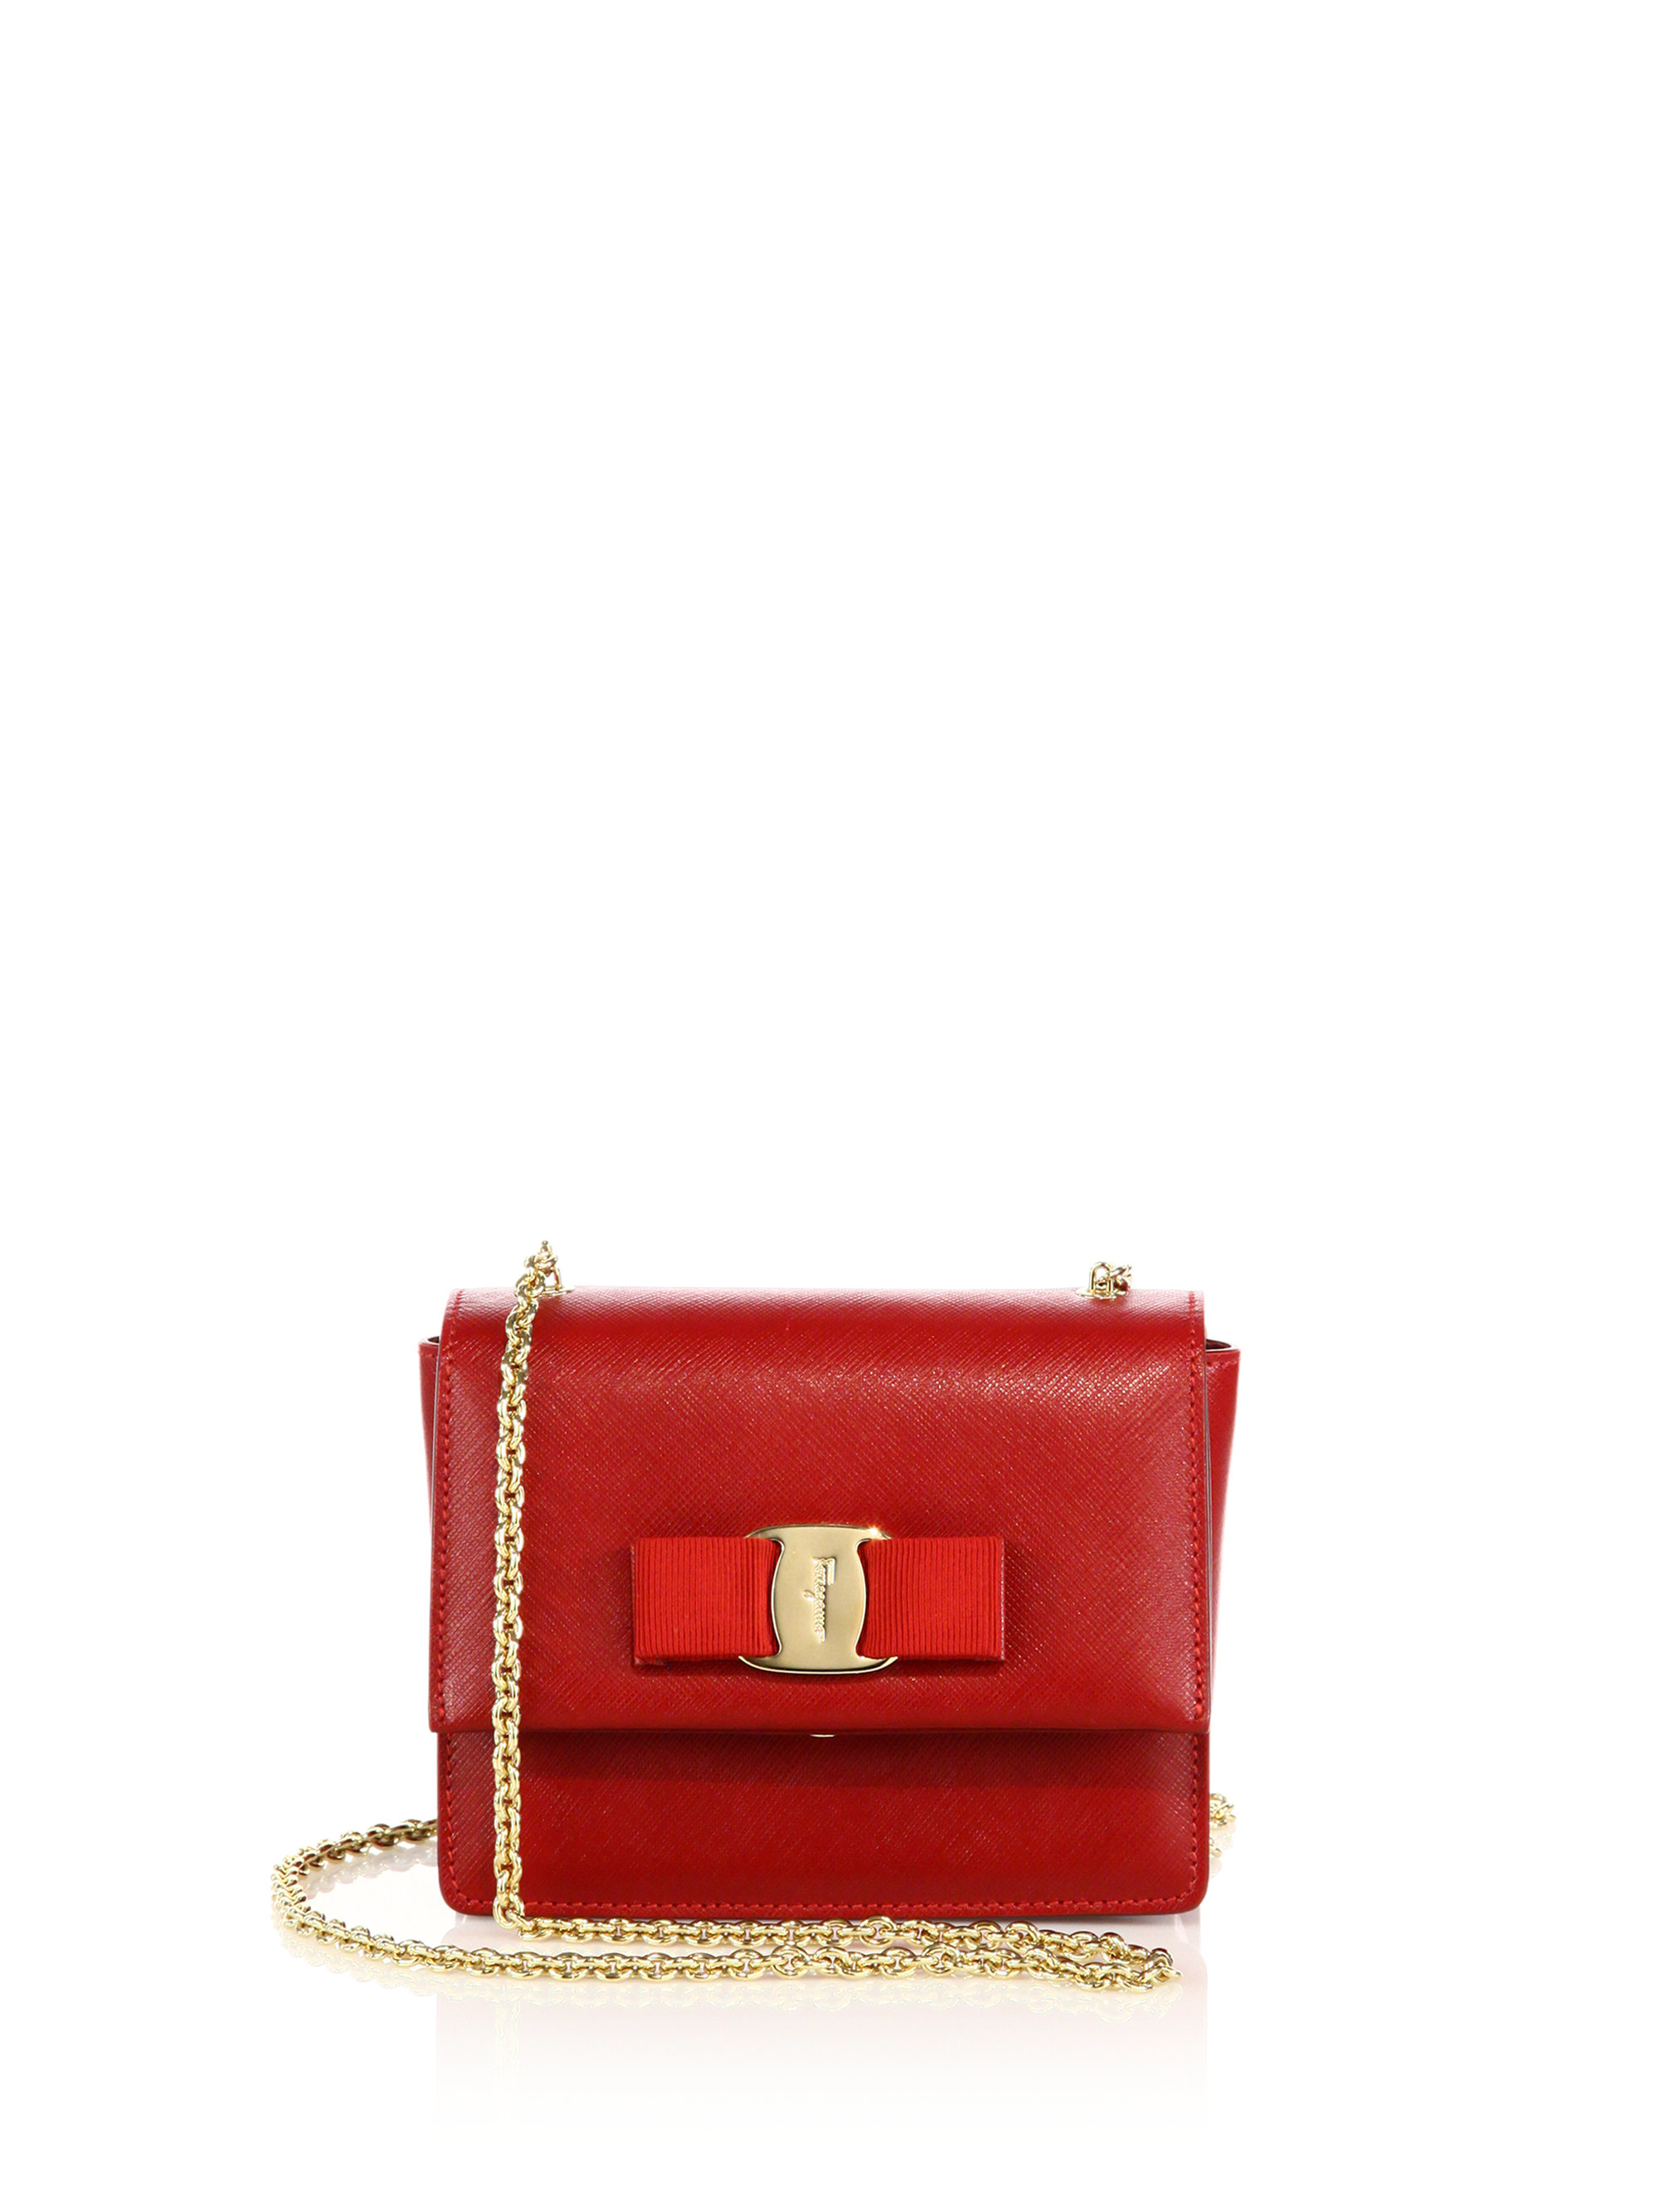 Lyst - Ferragamo Ginny Mini Square Saffiano Leather Crossbody Bag in Red 3897195a1c622